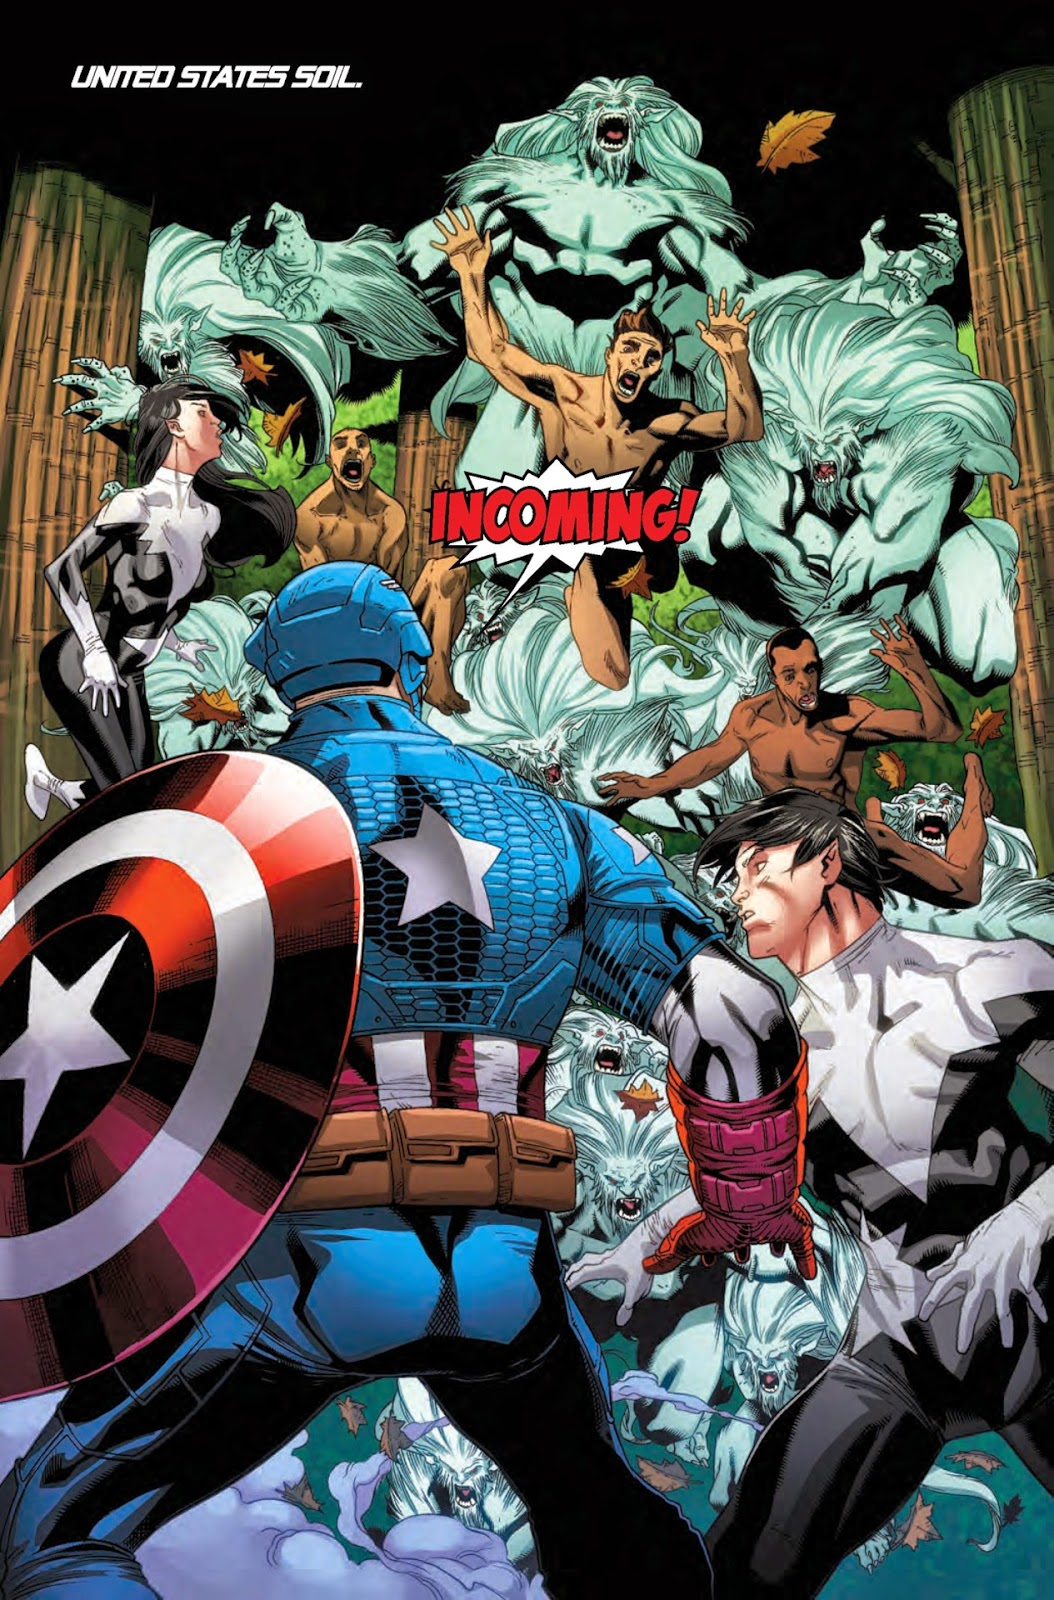 Avengers in Amazing X-Men stoping Wendigo